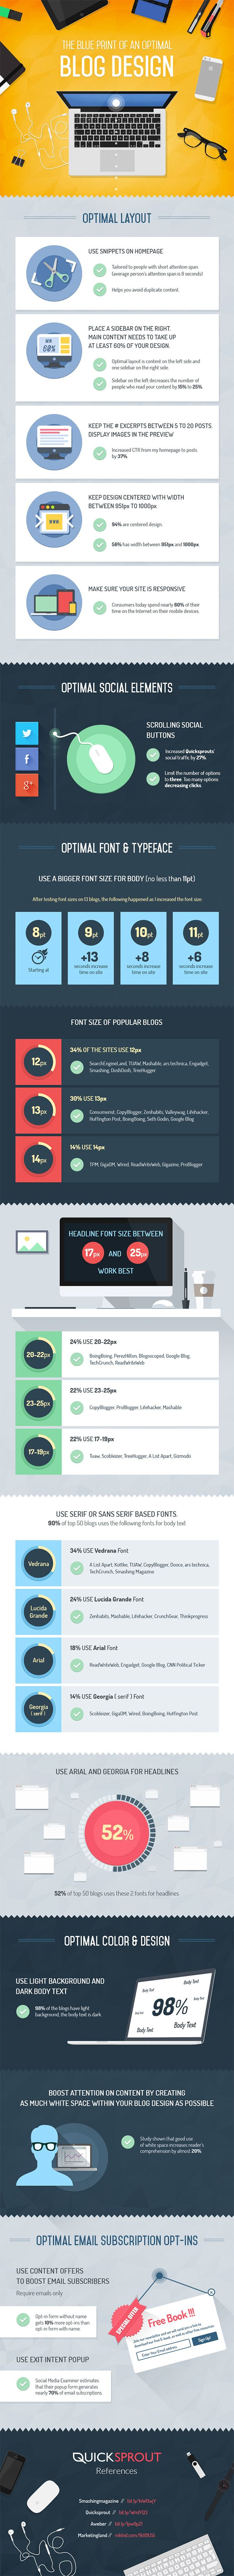 5 Essential Blog Design Rules to Follow for Maximum Readers and Social Shares #Infographic